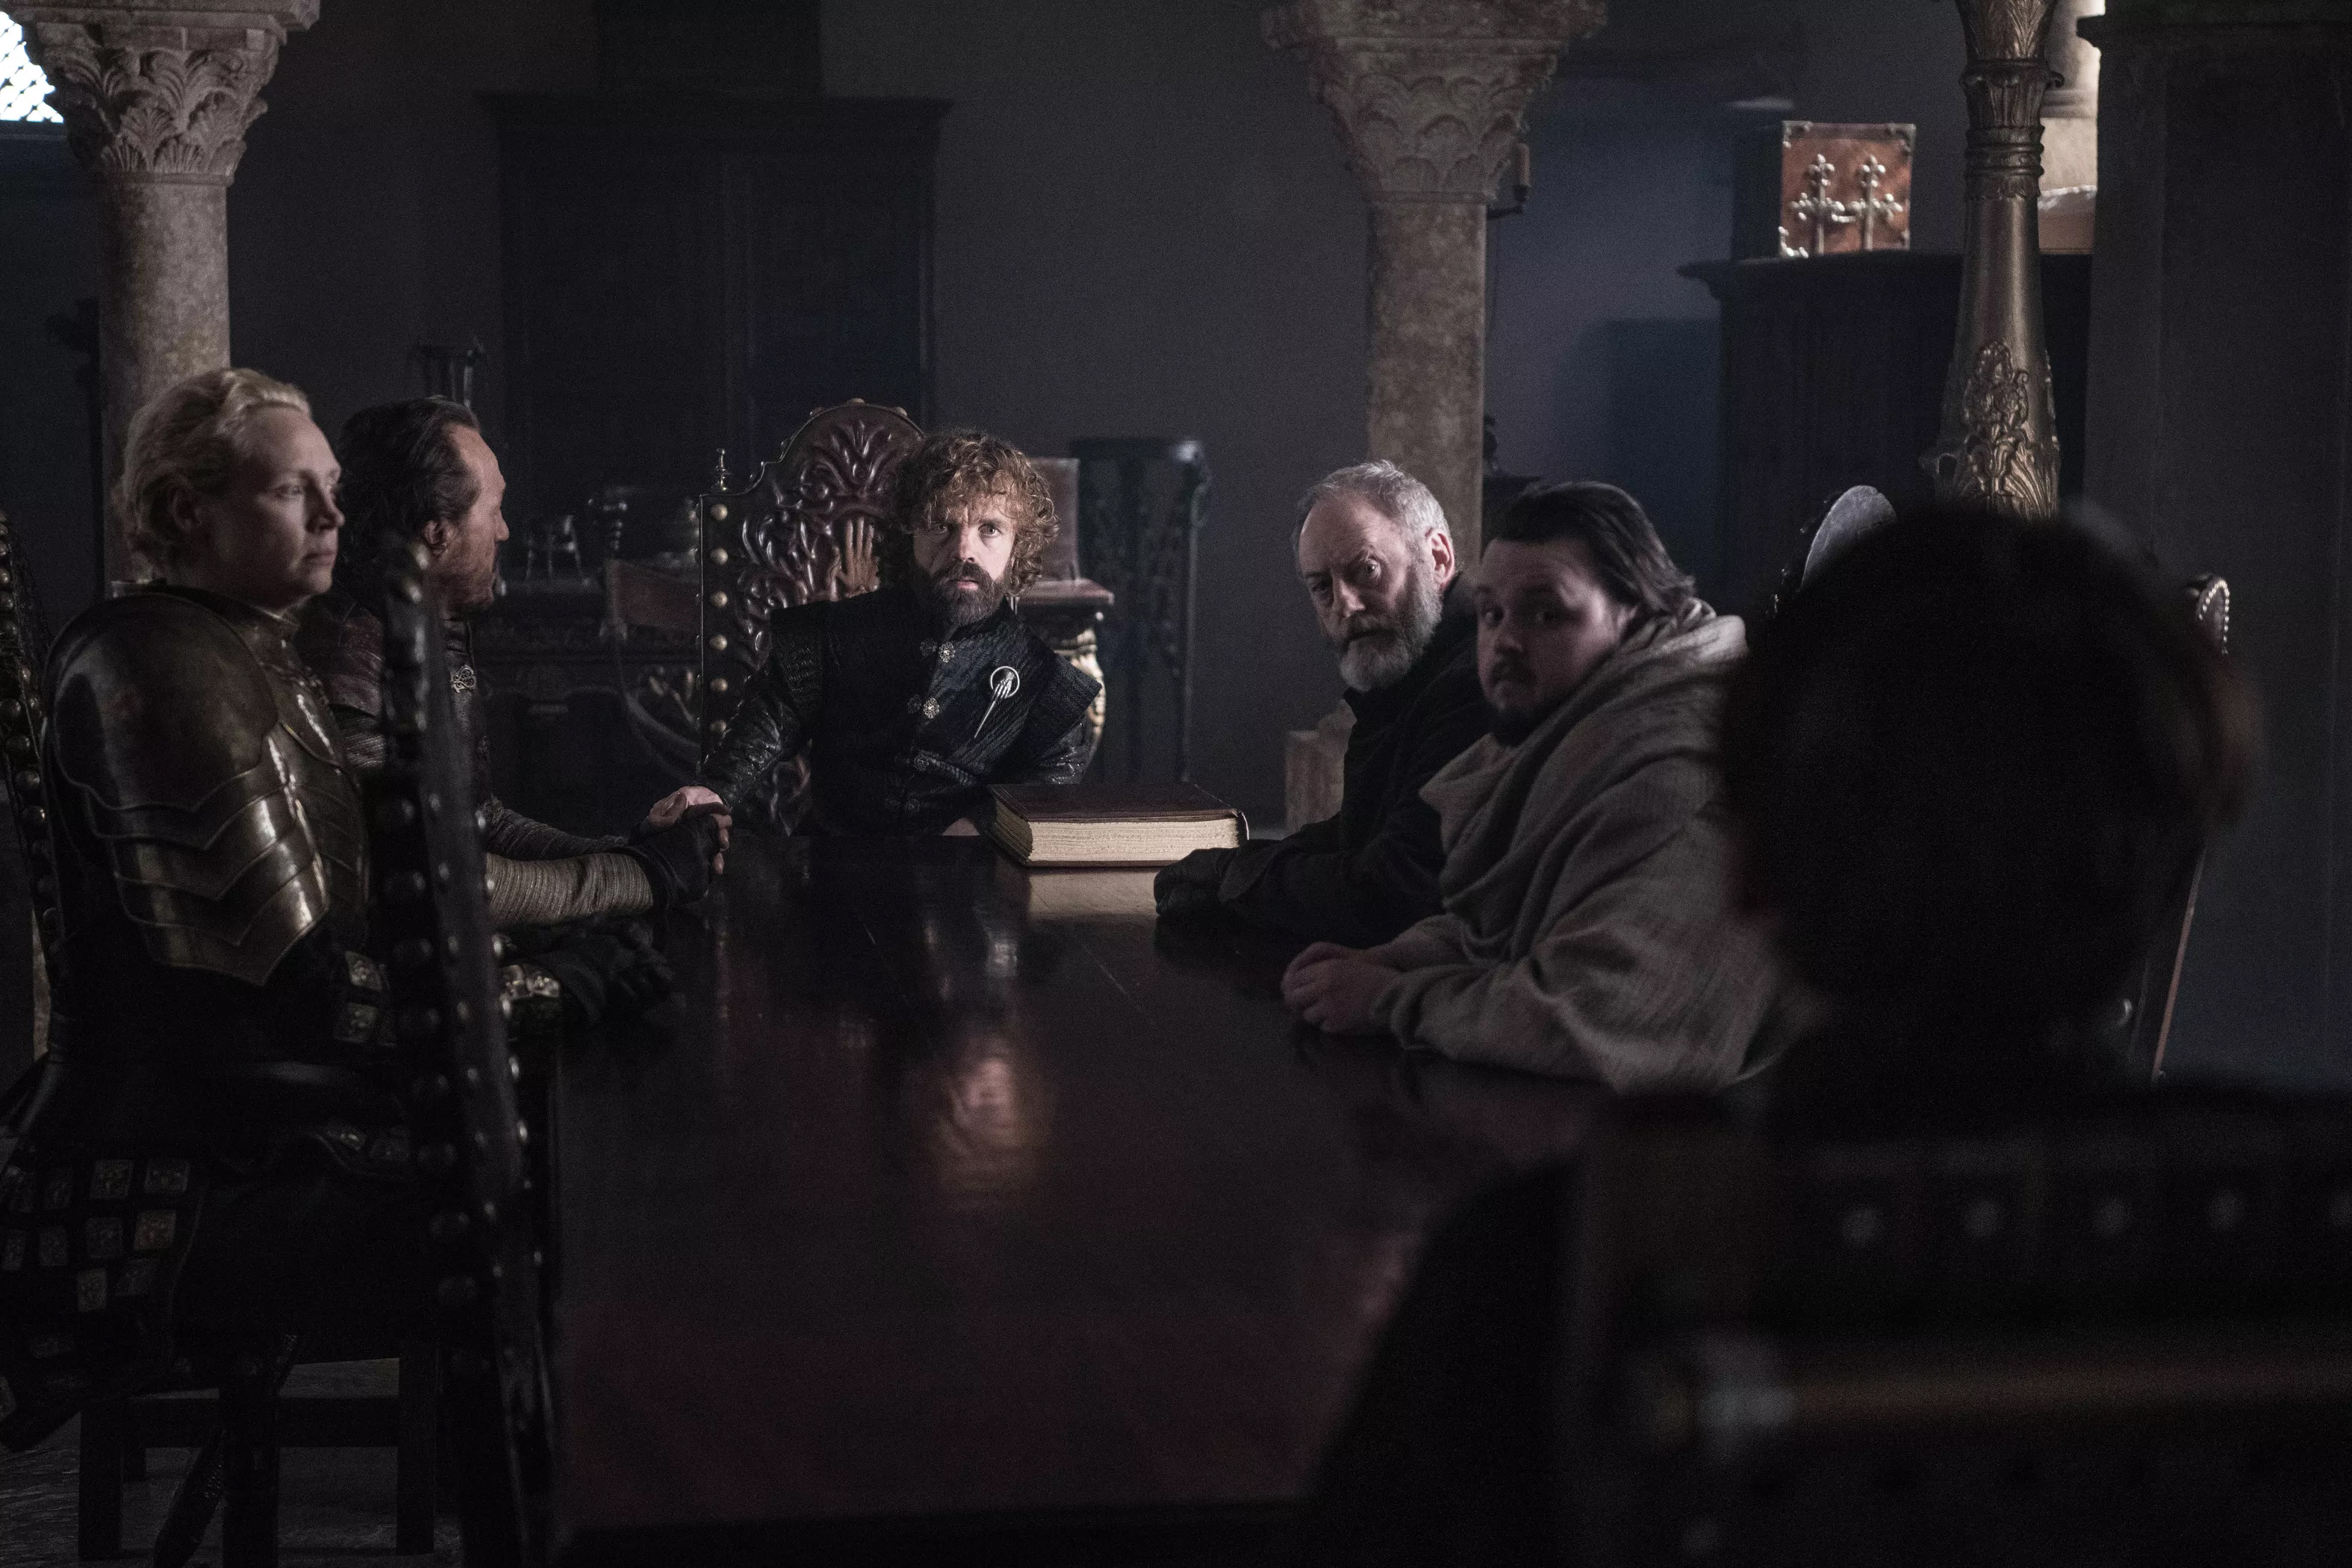 8x06 - The Iron 王位 - The Small Council